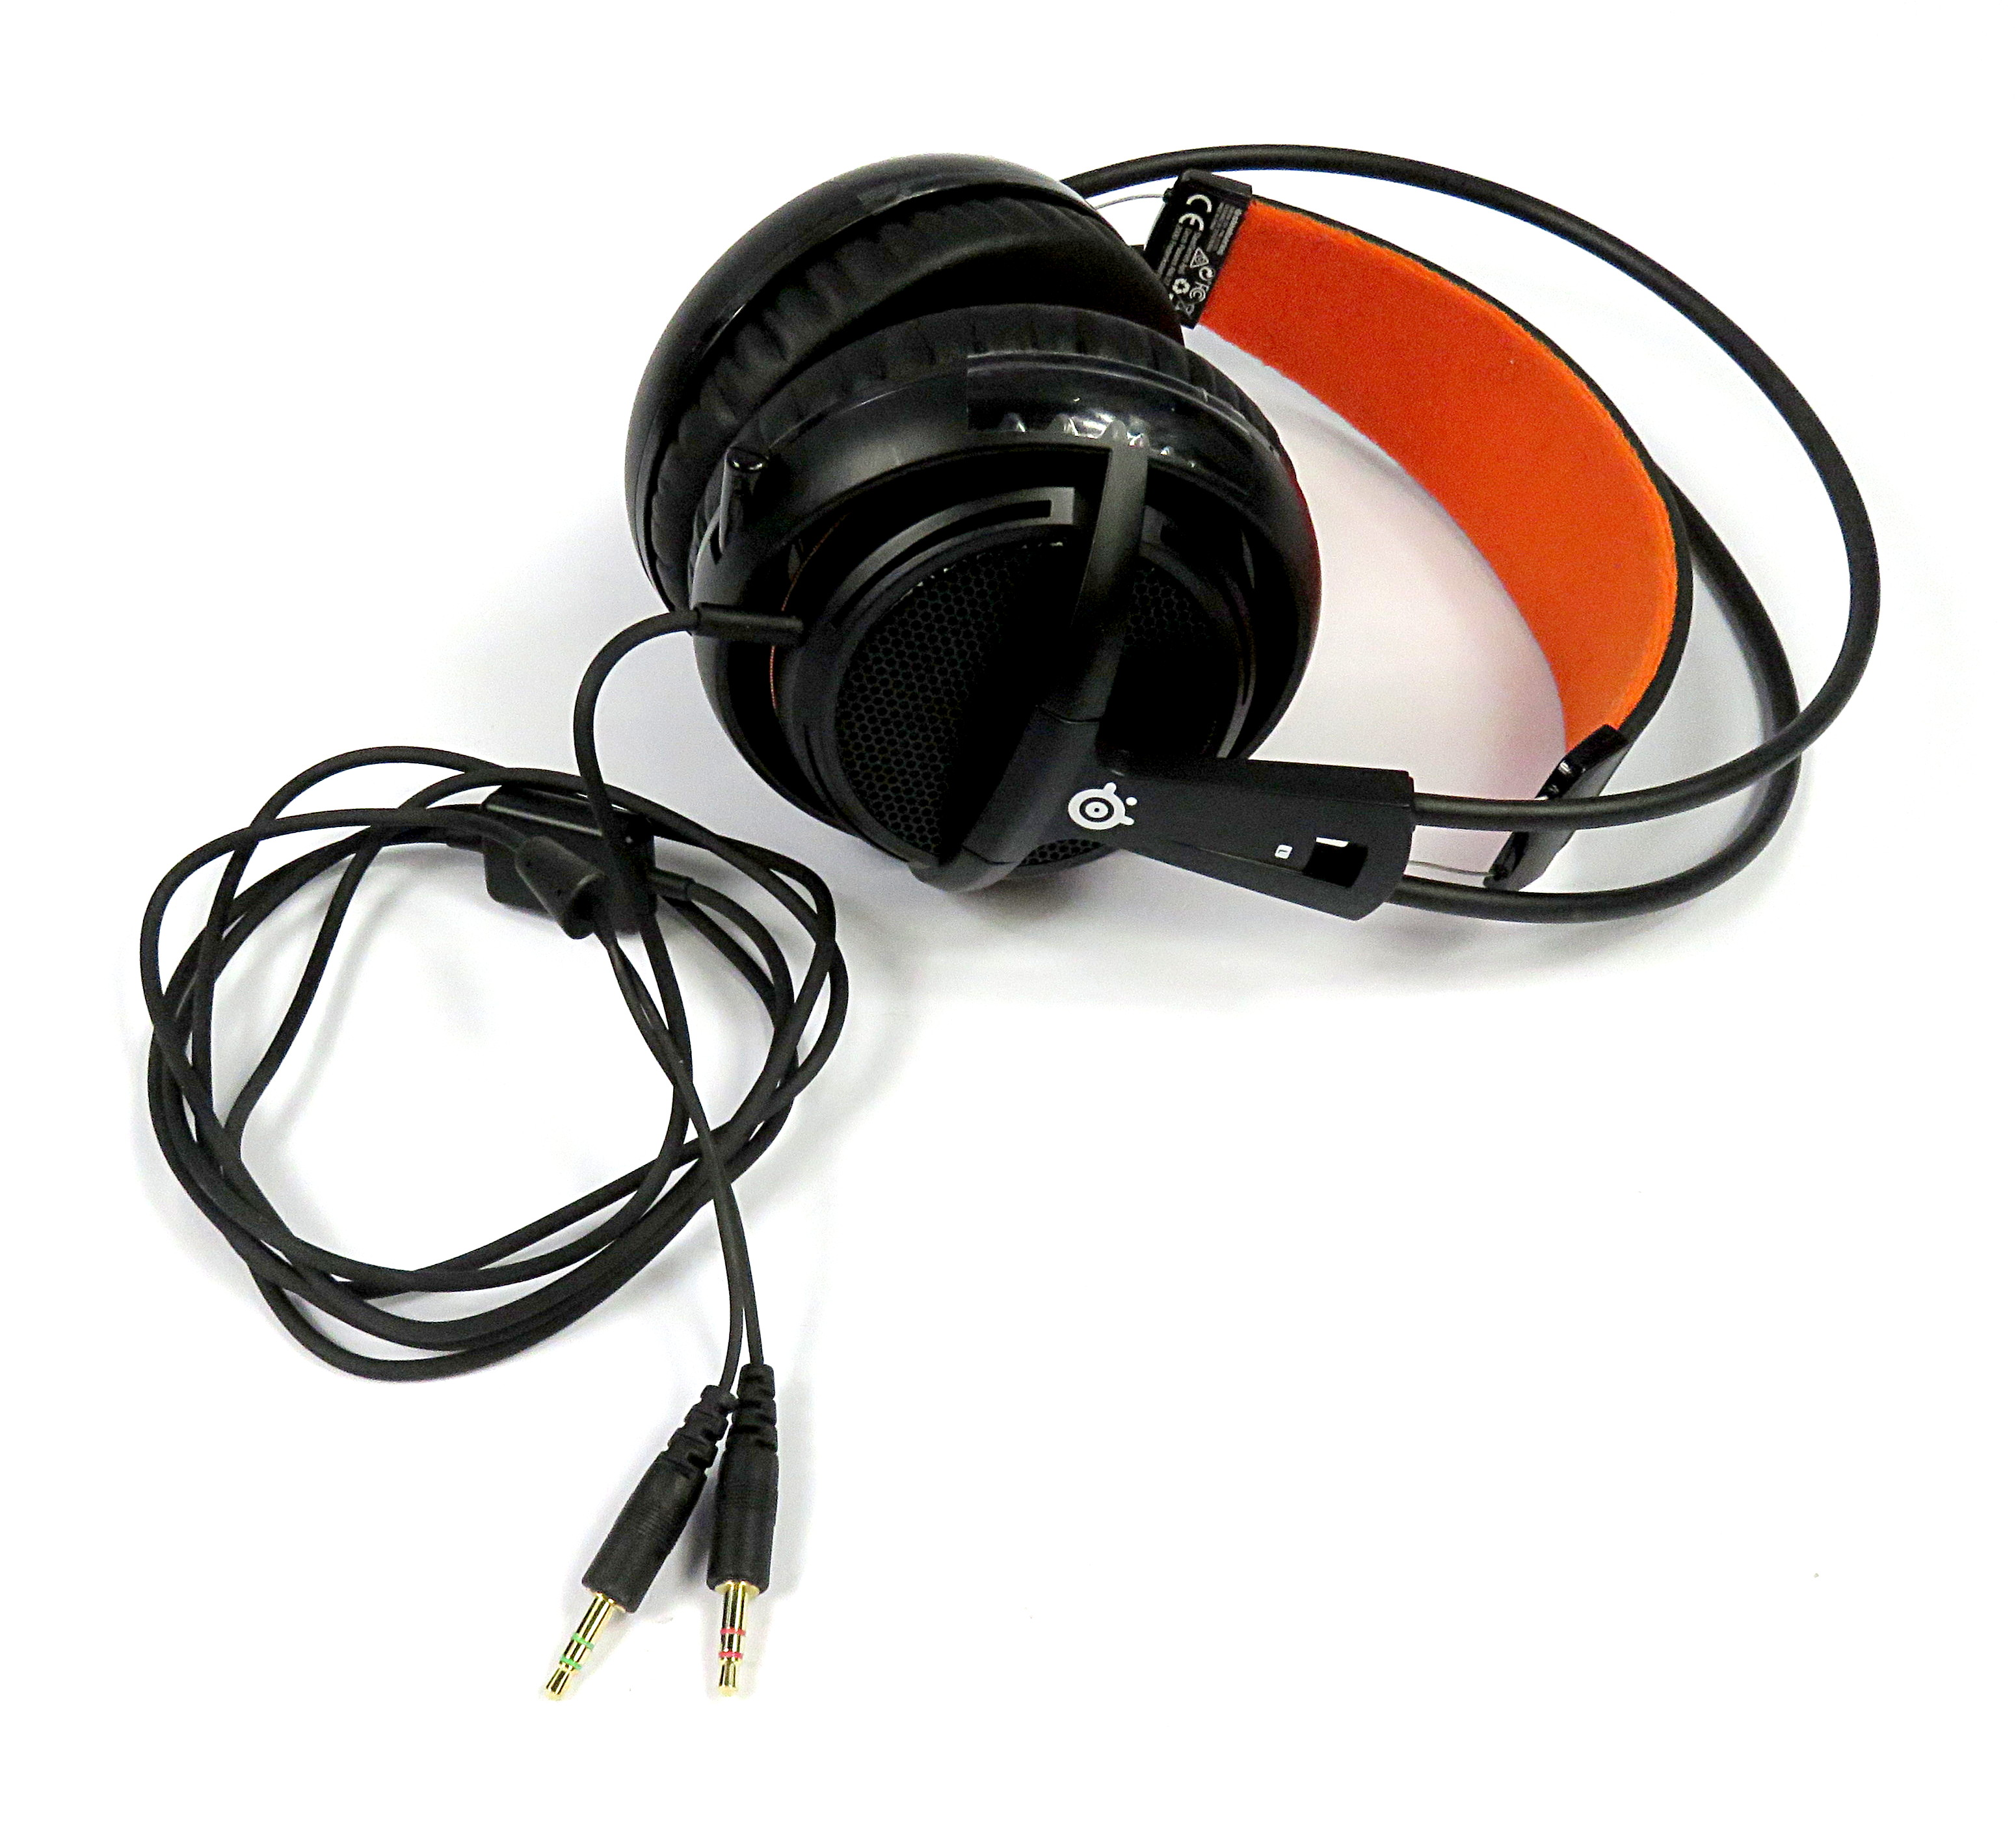 1dd84021a1f Steelseries Siberia 200 Wired Gaming Headset 51133, Black, No Console  Adapter